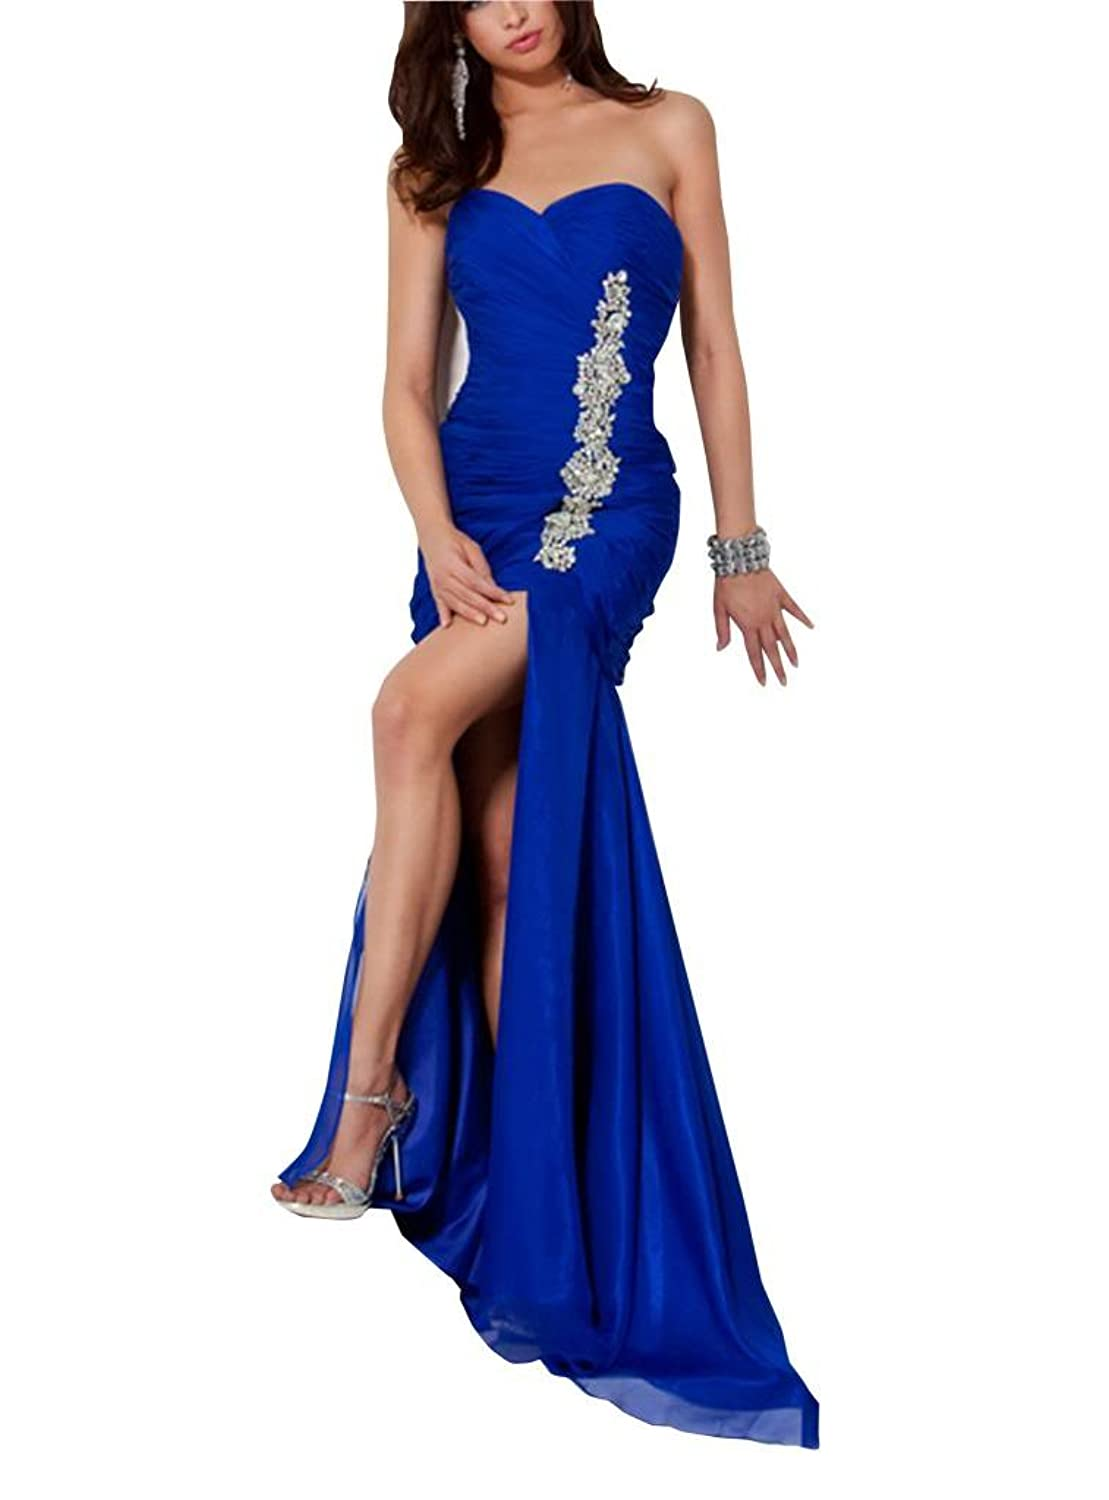 GEORGE BRIDE Sheath/ Column Sweetheart Slip Front Evening Dress With Beaded Appliques